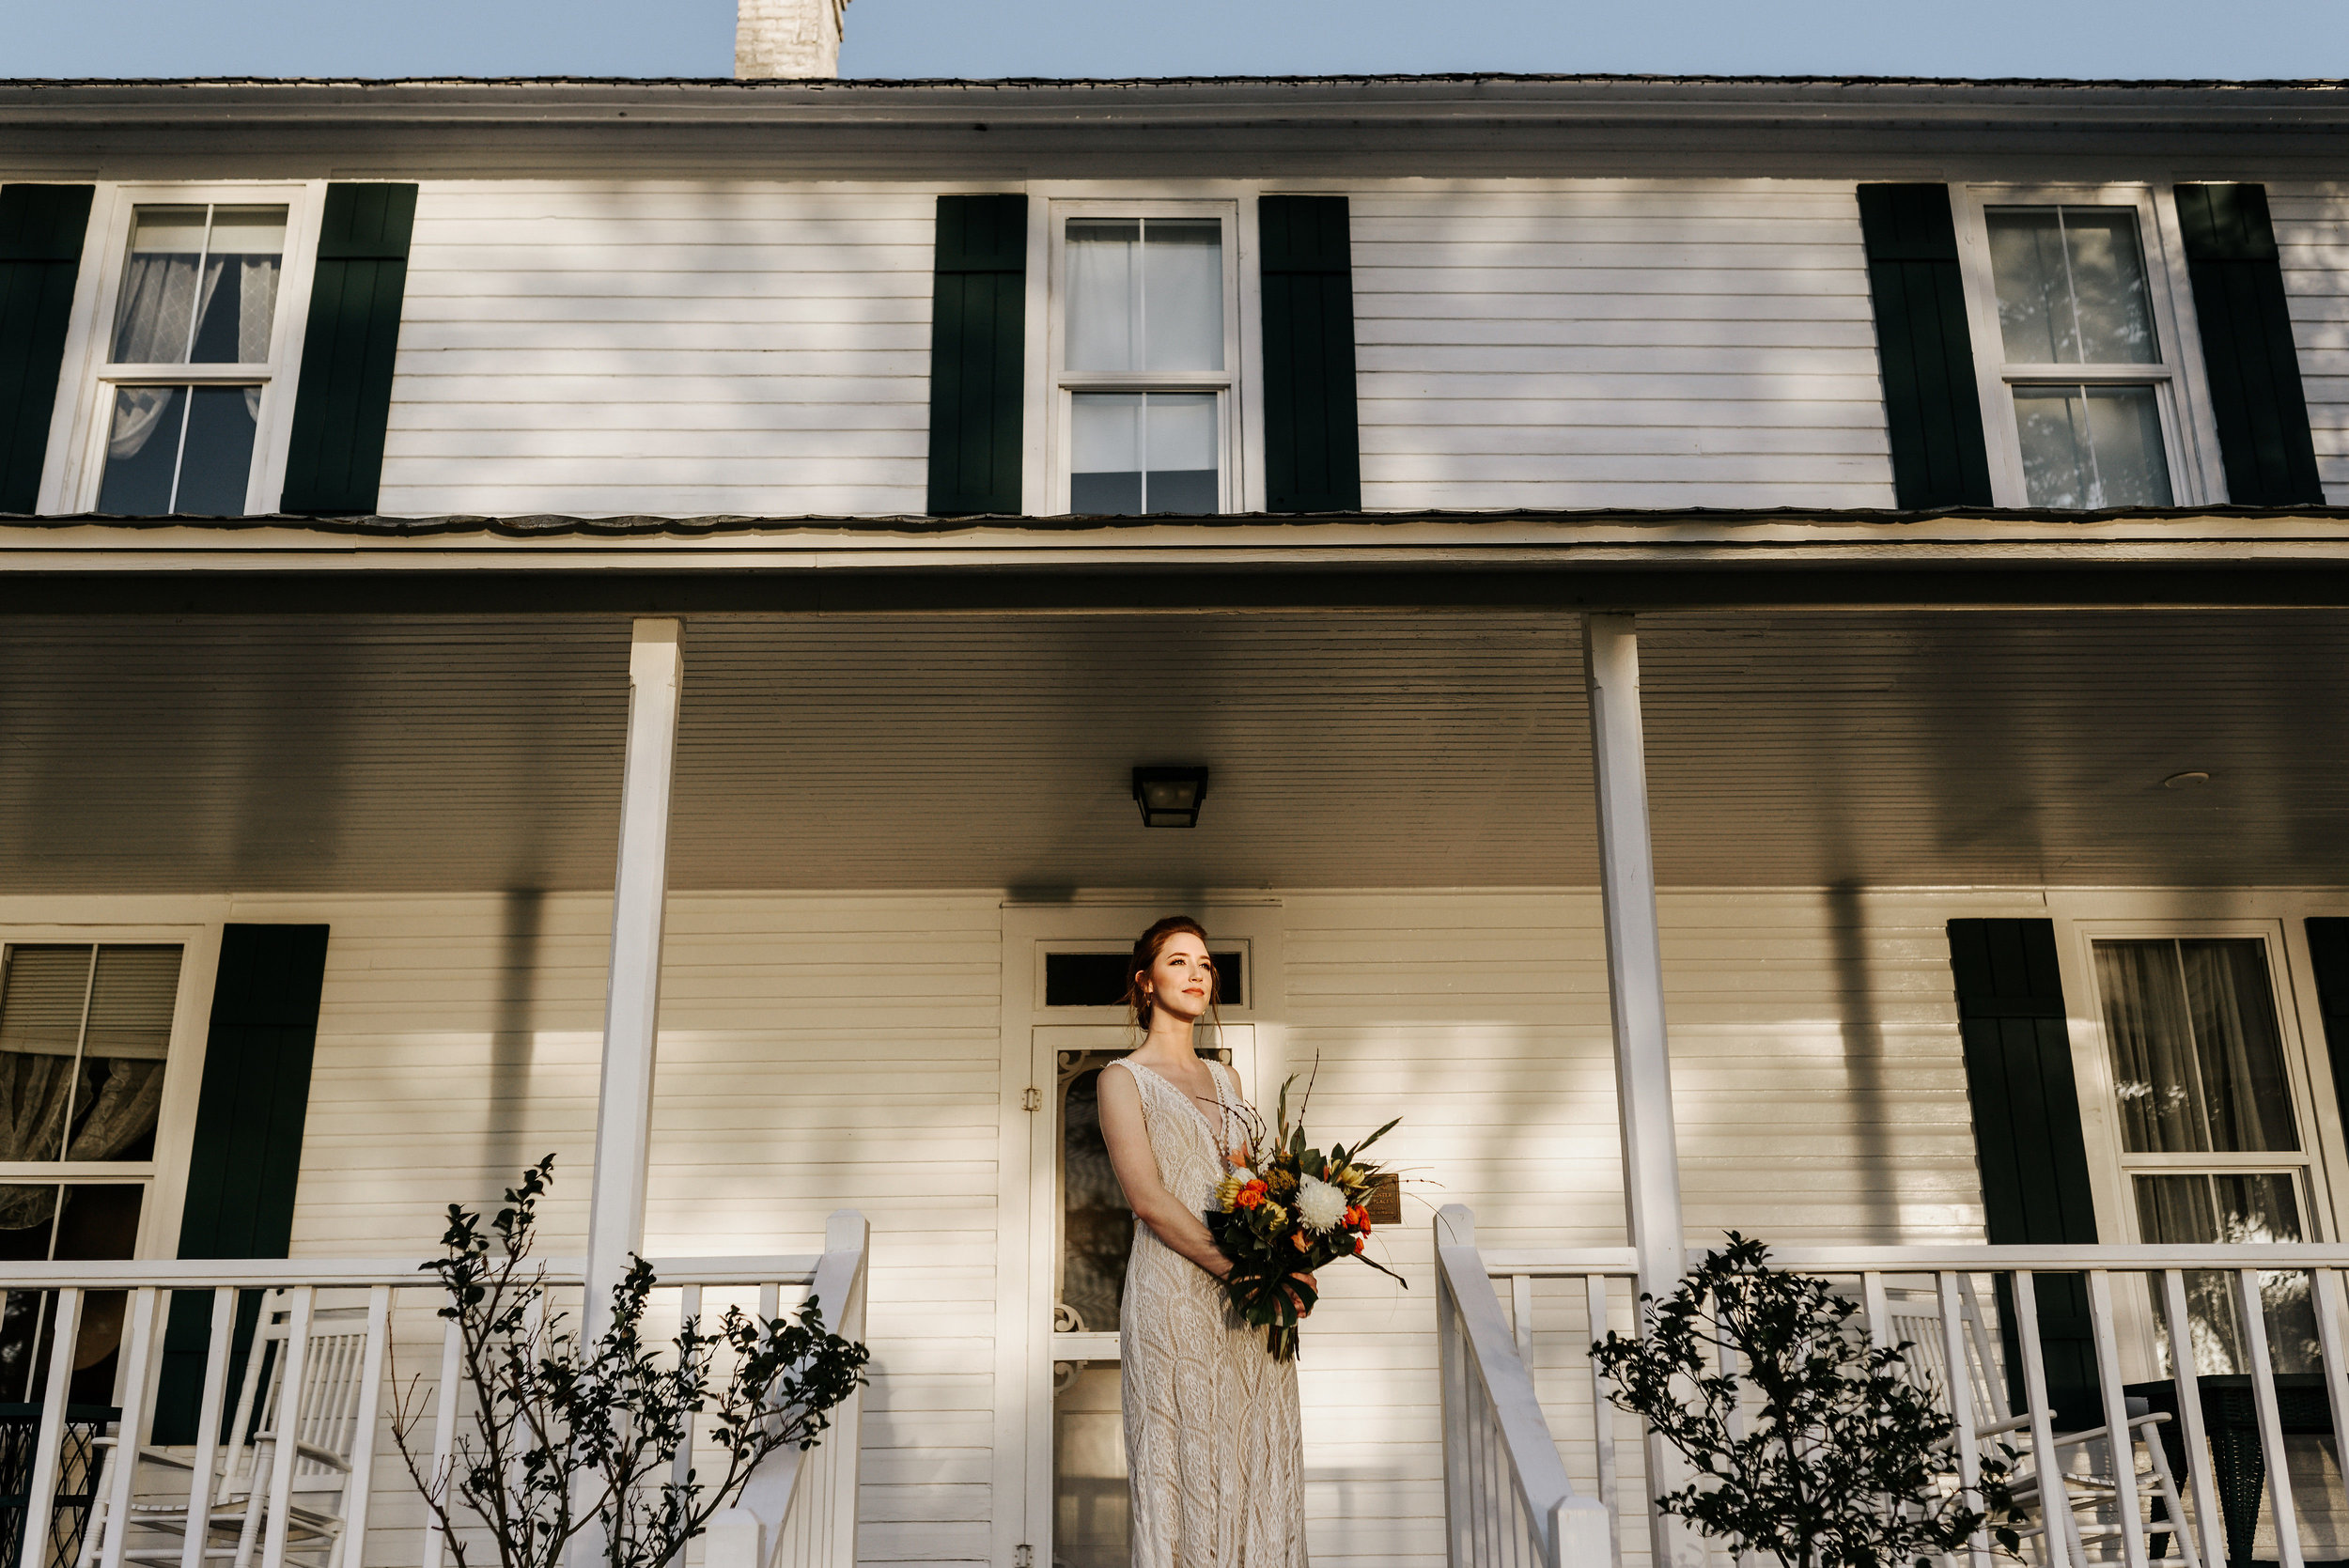 Field_Manor_Wedding_Styled_Shoot_Merritt_Island_Florida_Photography_by_V_1714.jpg